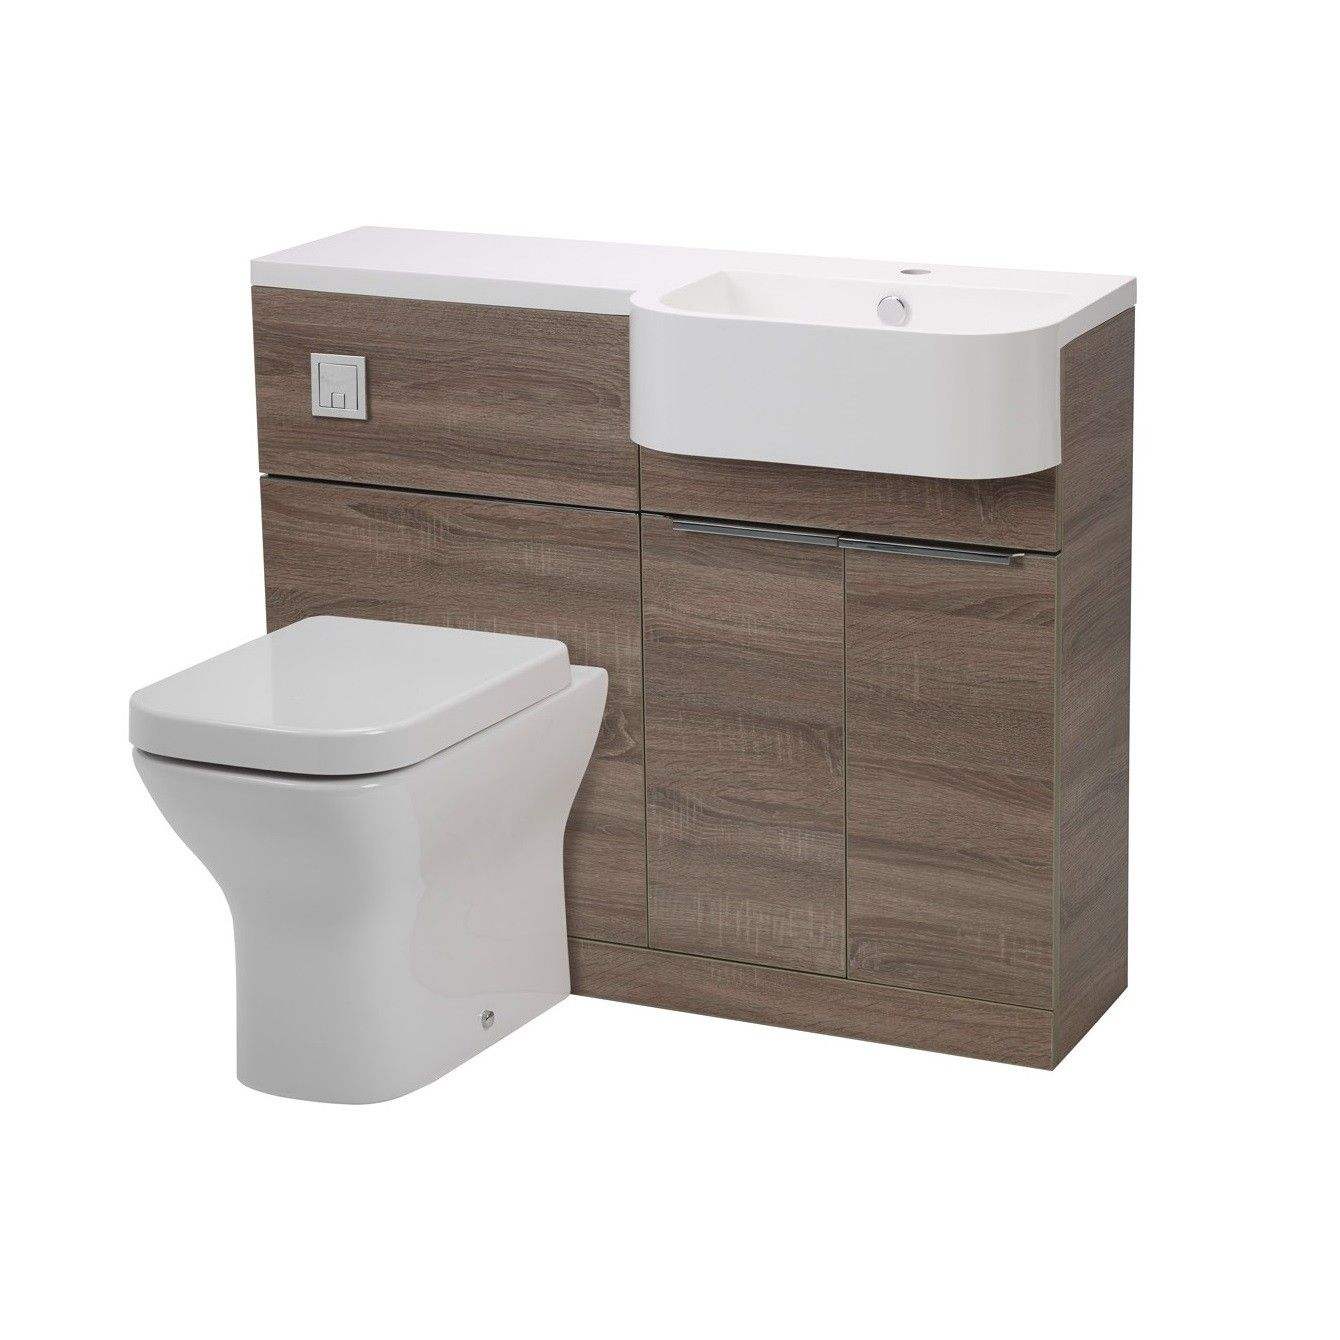 Toilet sink combination combination basin toilet units for Small bathroom vanity sink combo